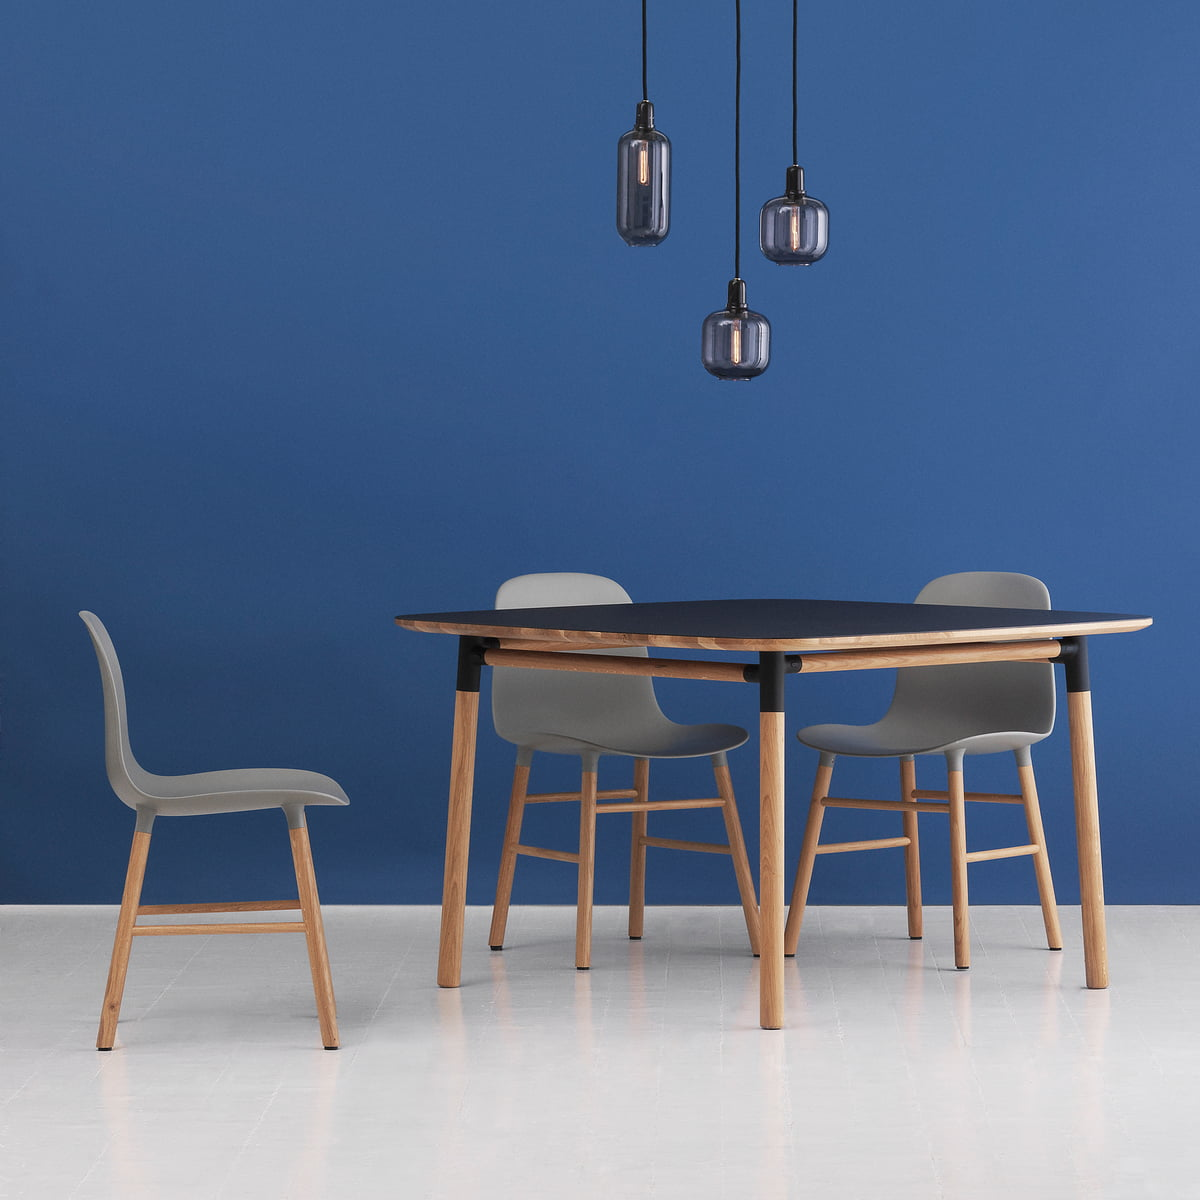 Form table by normann copenhagen at the shop for Barhocker normann copenhagen